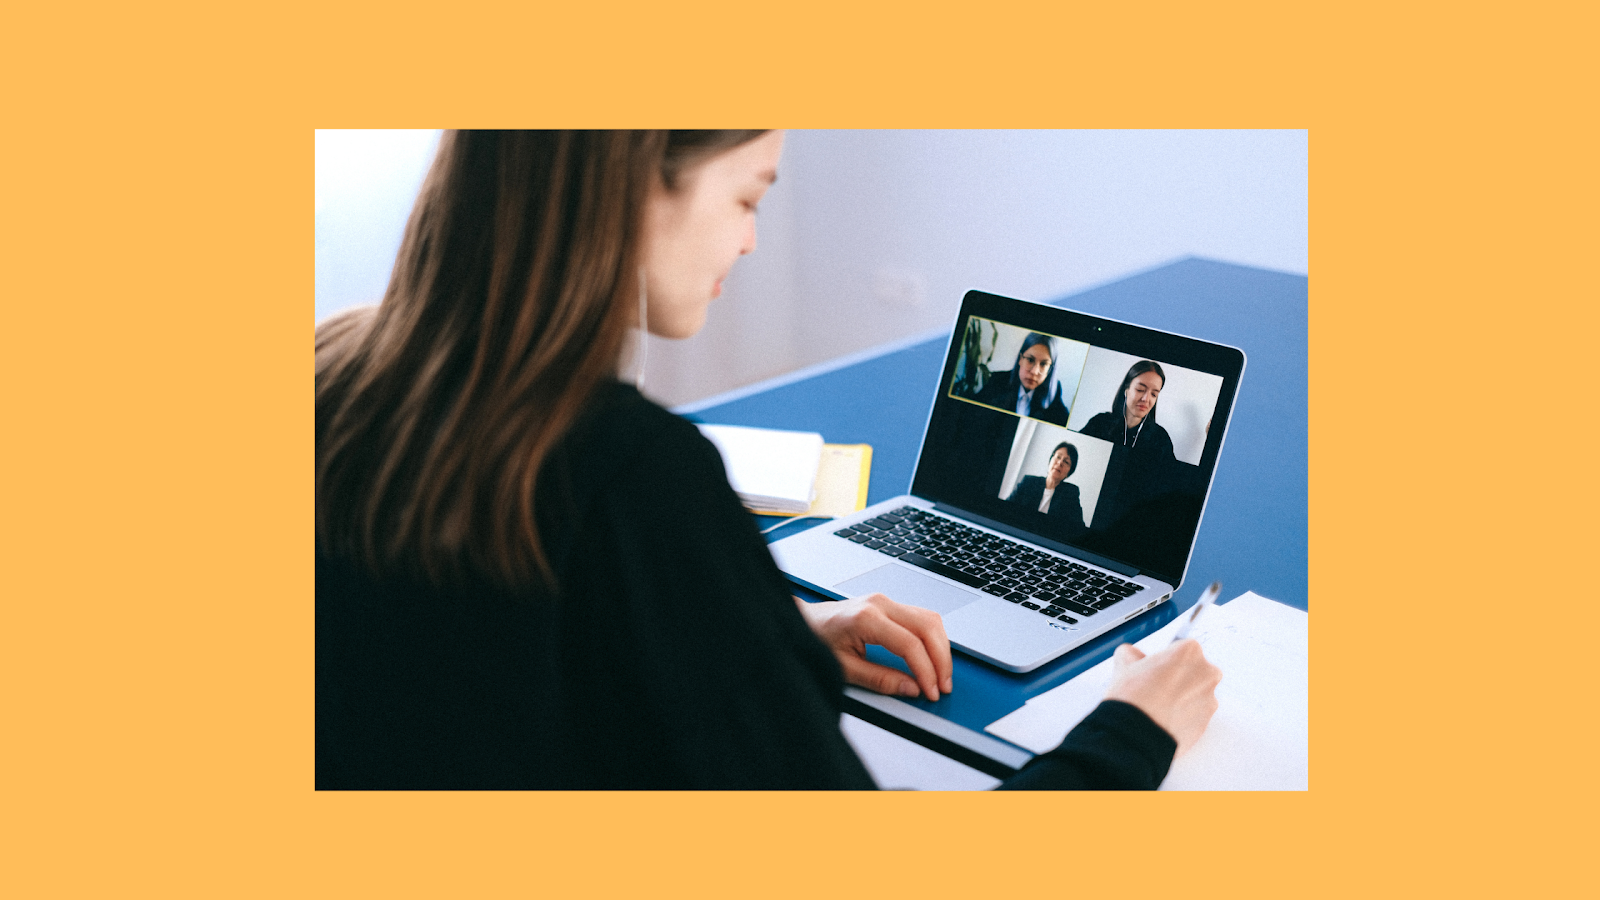 Conduct video calls and conferences